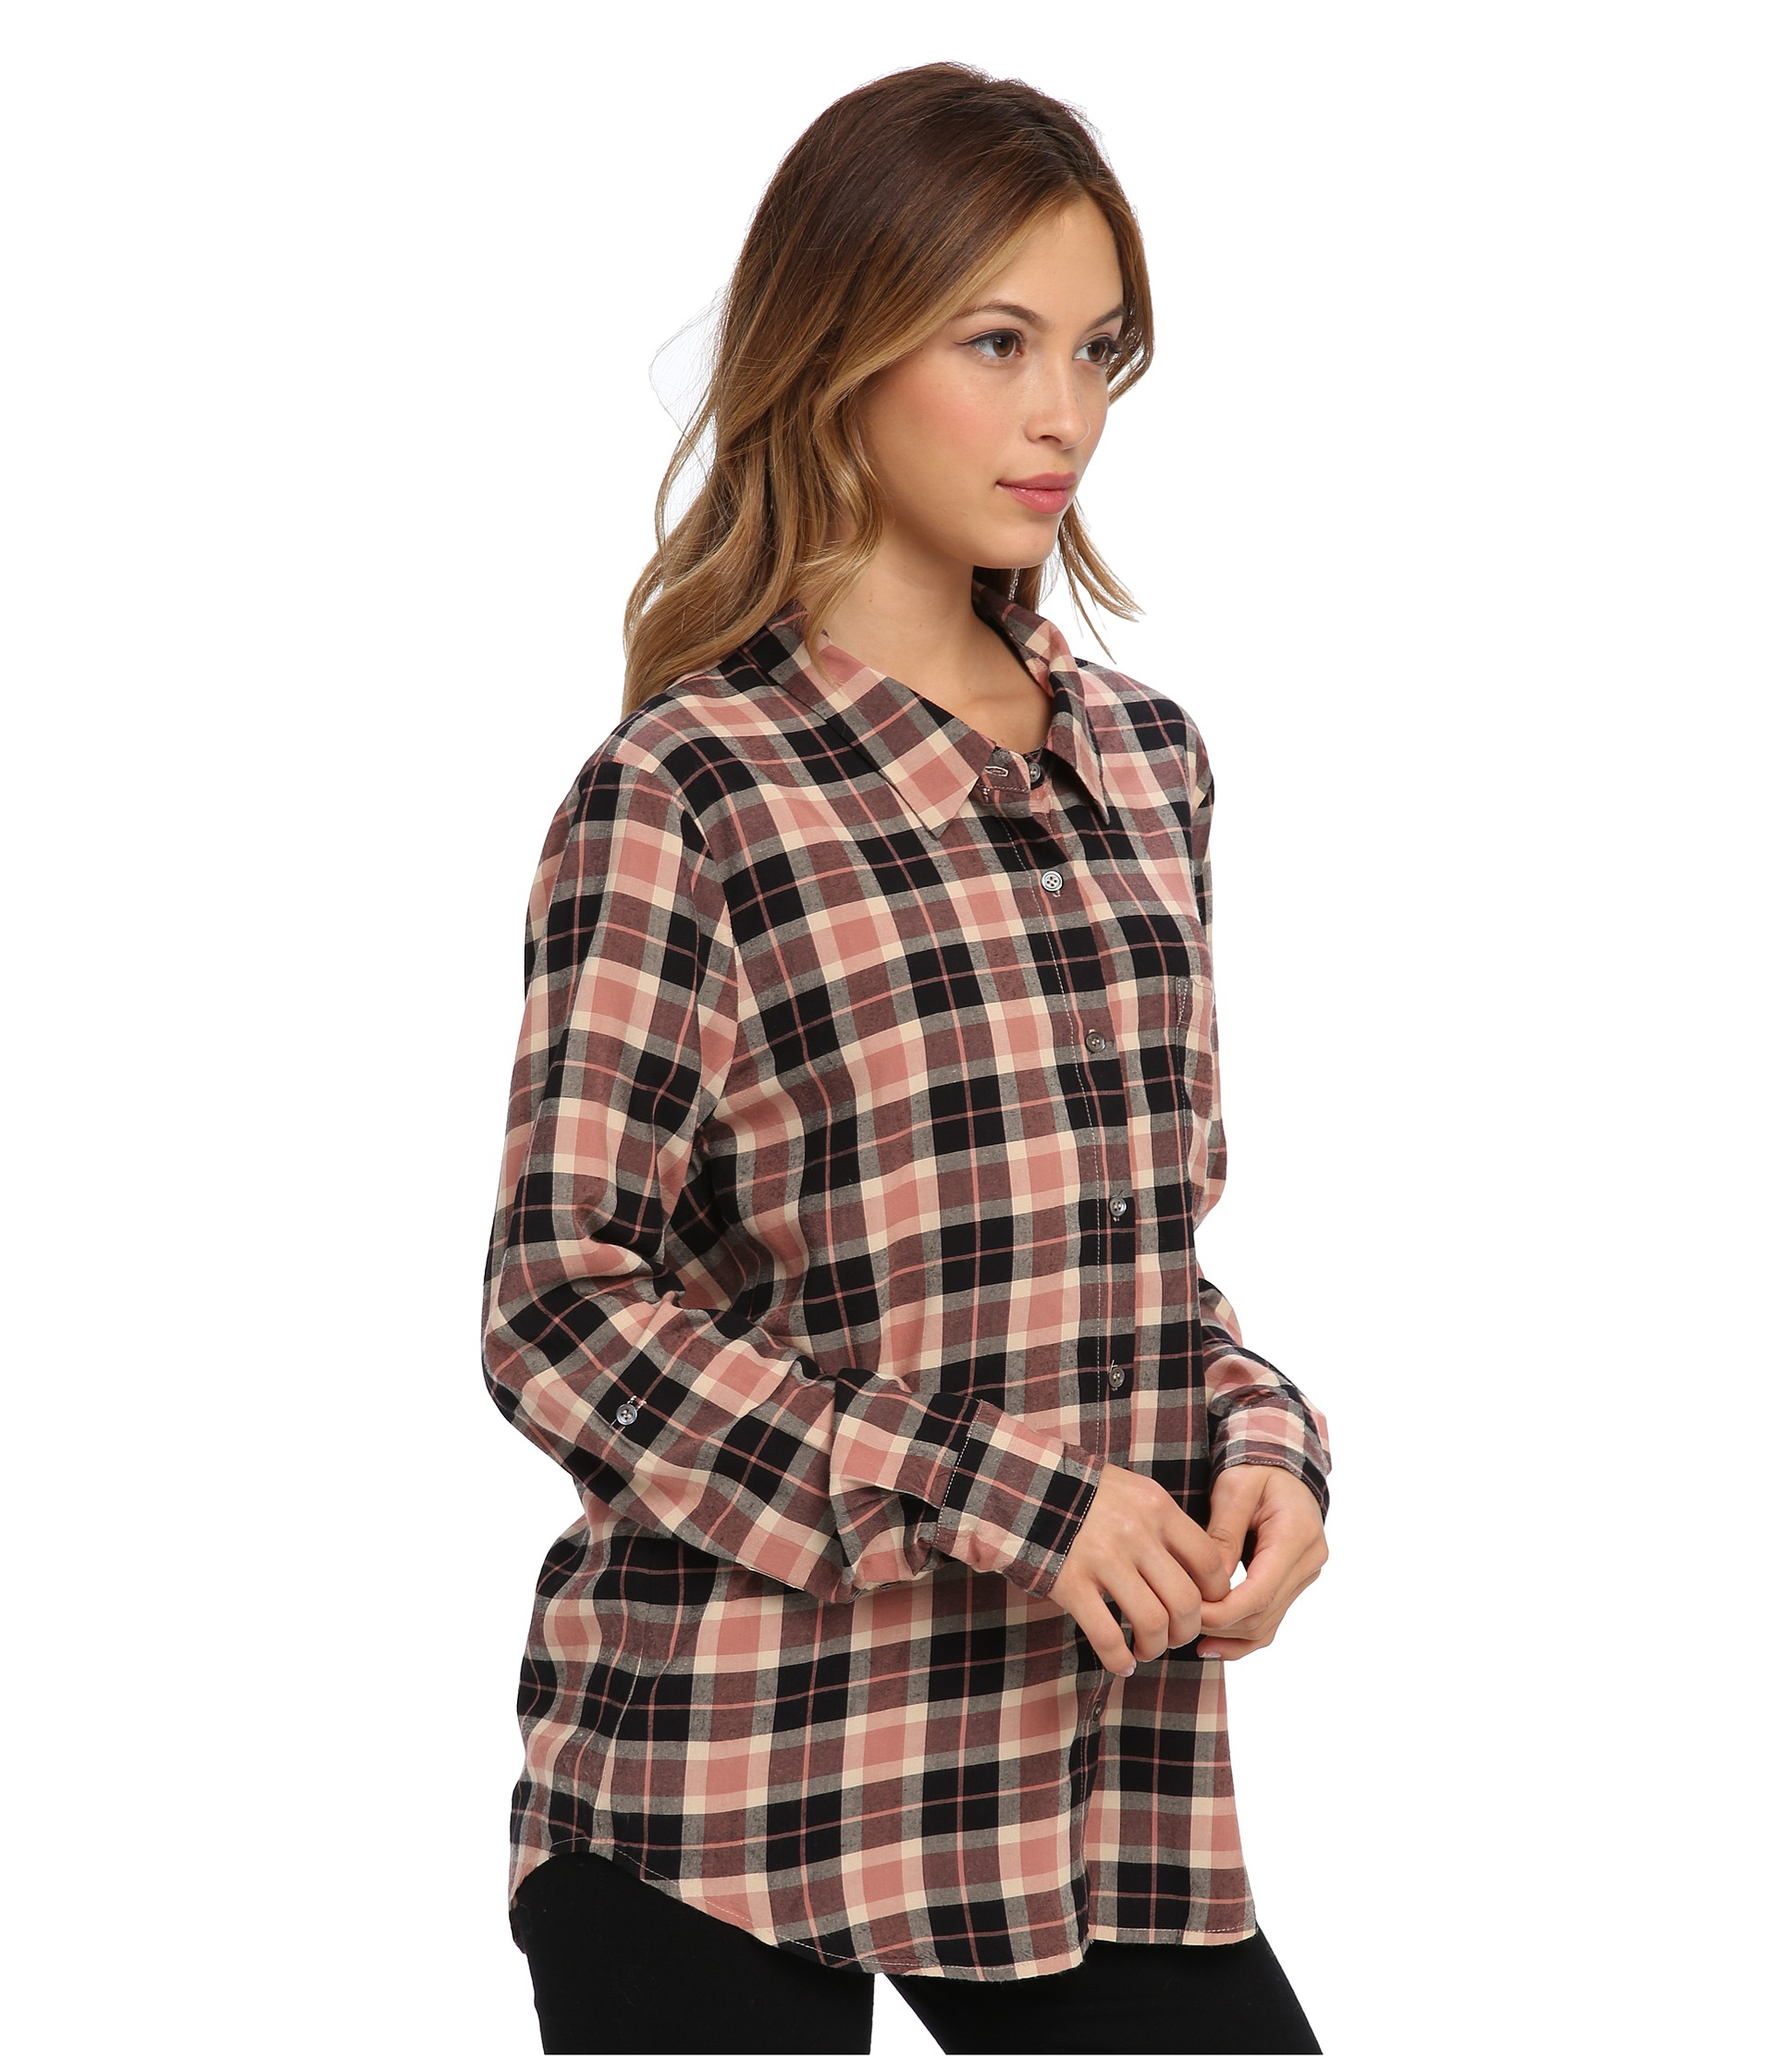 Joie anabella 5706 27430 in brown lyst for Soft joie plaid shirt